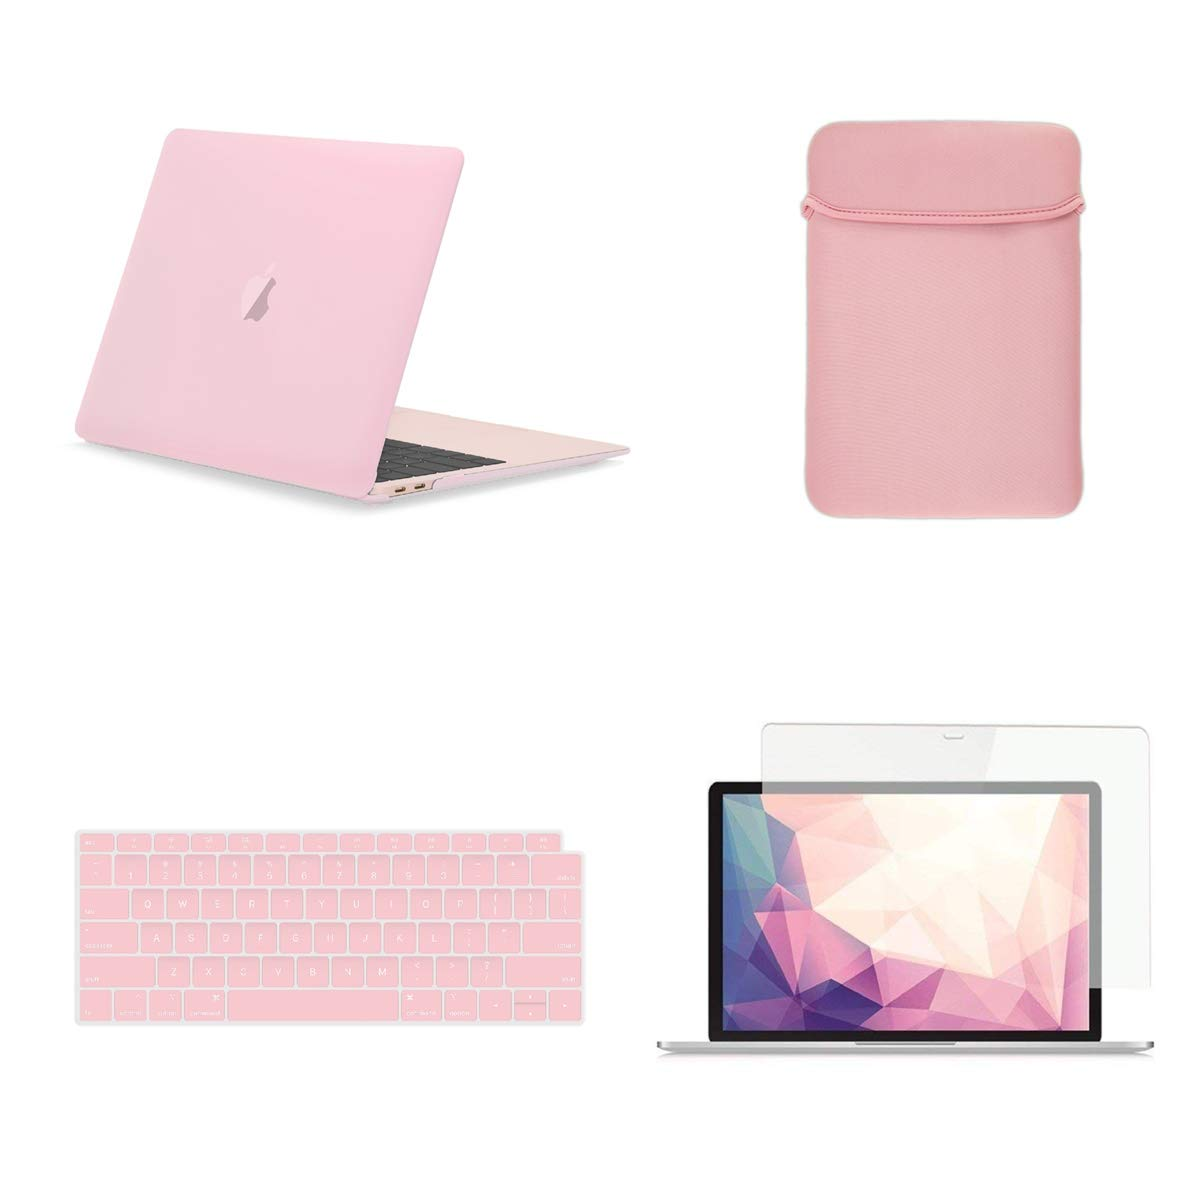 TOP CASE 4 in 1 Bundle - Rubberized Hard Case, Keyboard Cover, Sleeve, Screen Protector Compatible with 2018 Release MacBook Air 13 Inch with Retina Display fits Touch ID Model: A1932 - Rose Quartz